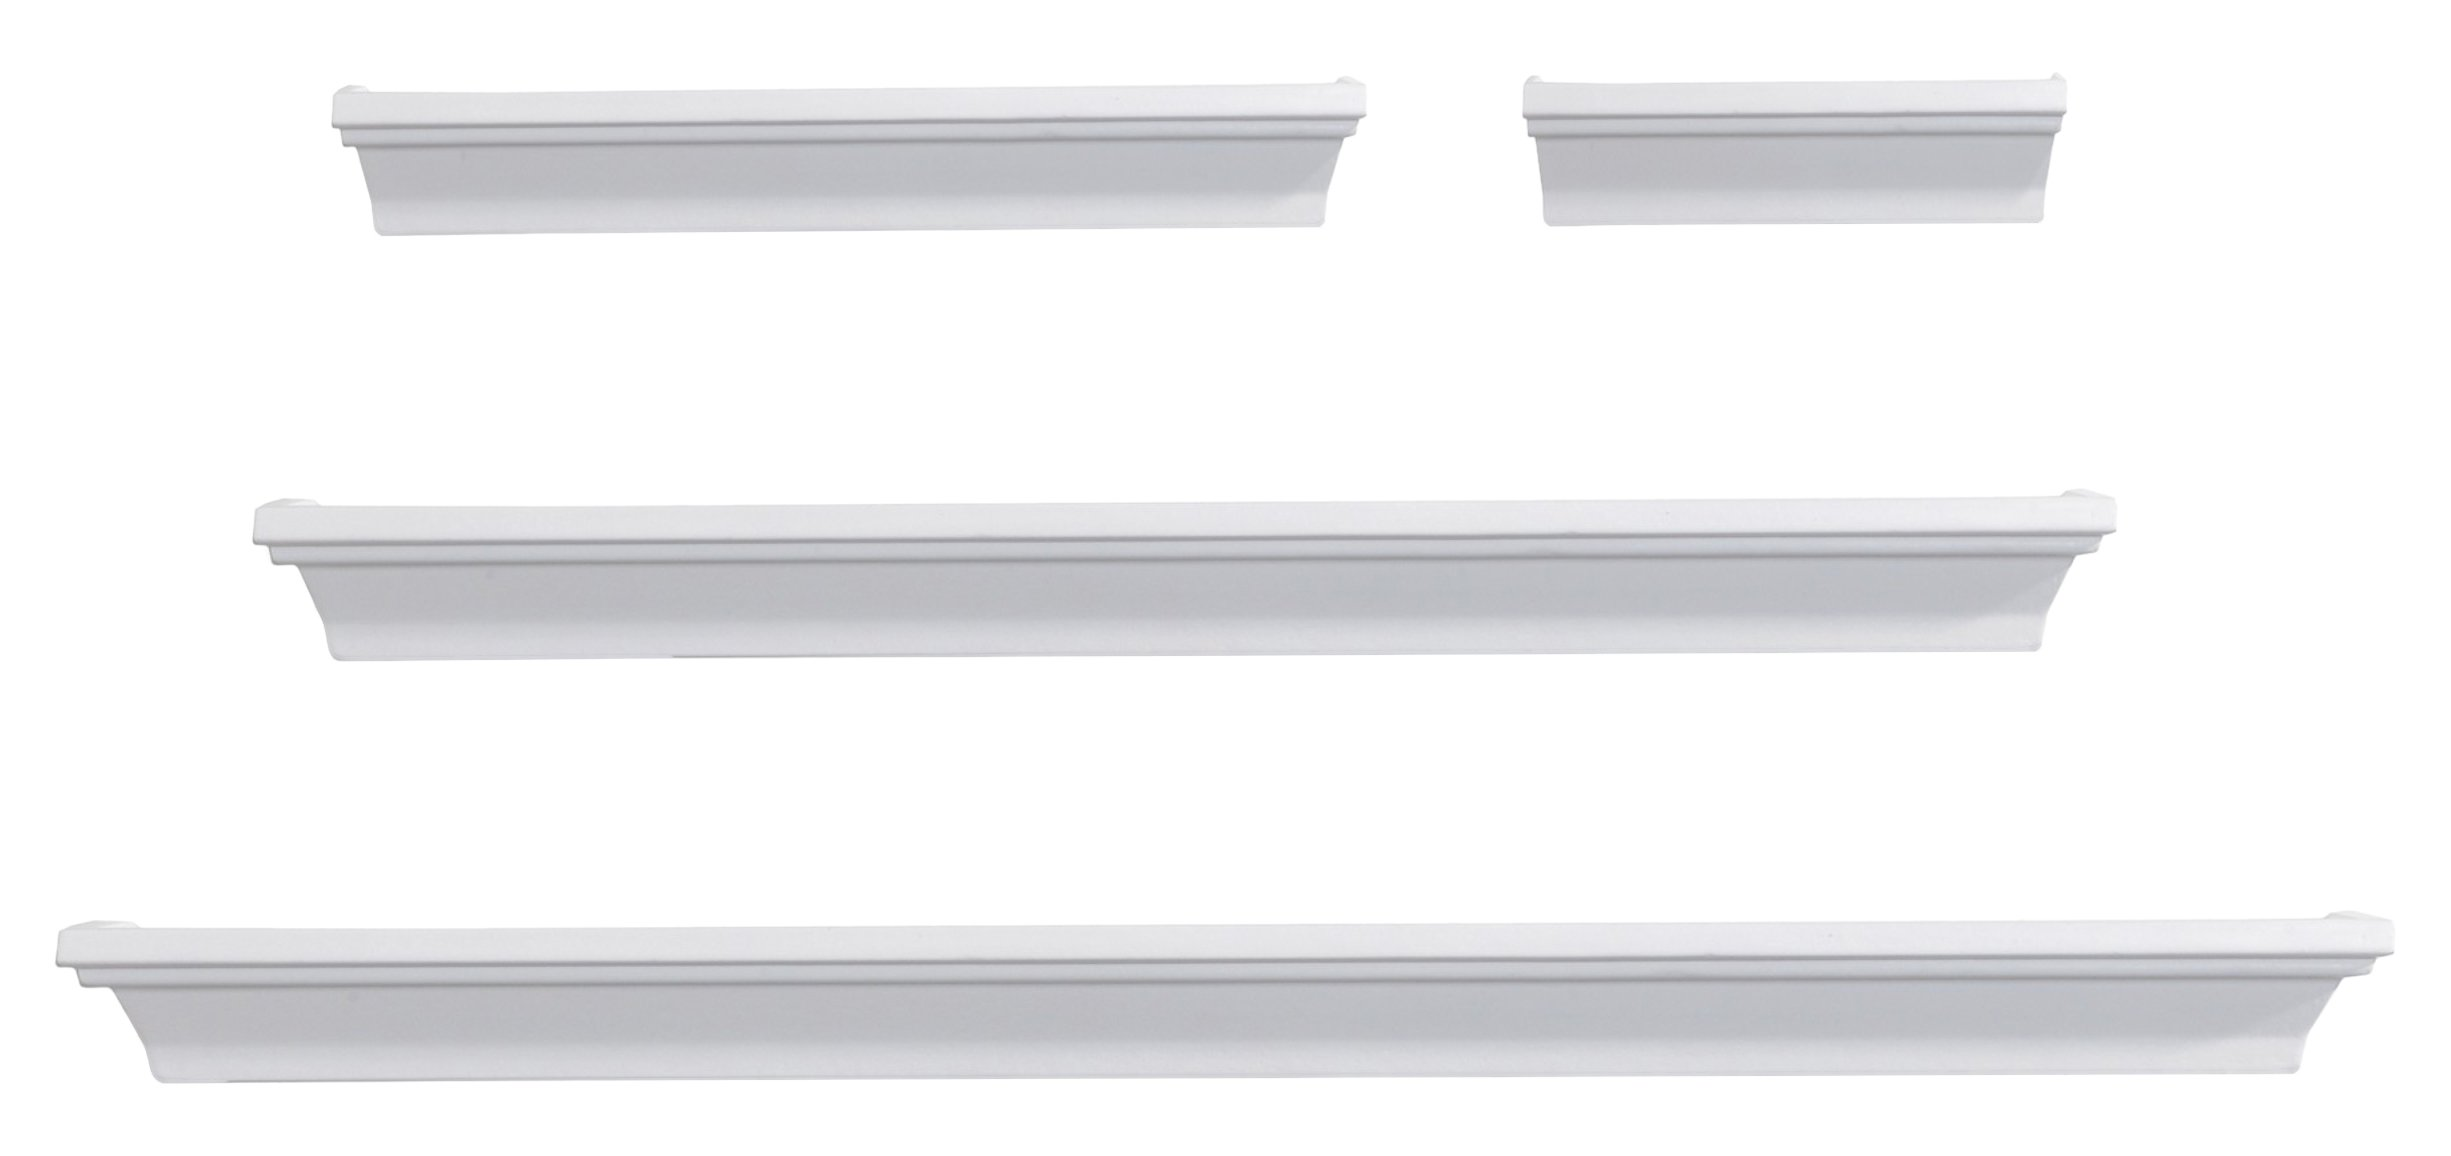 Melannco Floating Wall Mount Molding Ledge Shelves, Set of 4, White by MELANNCO